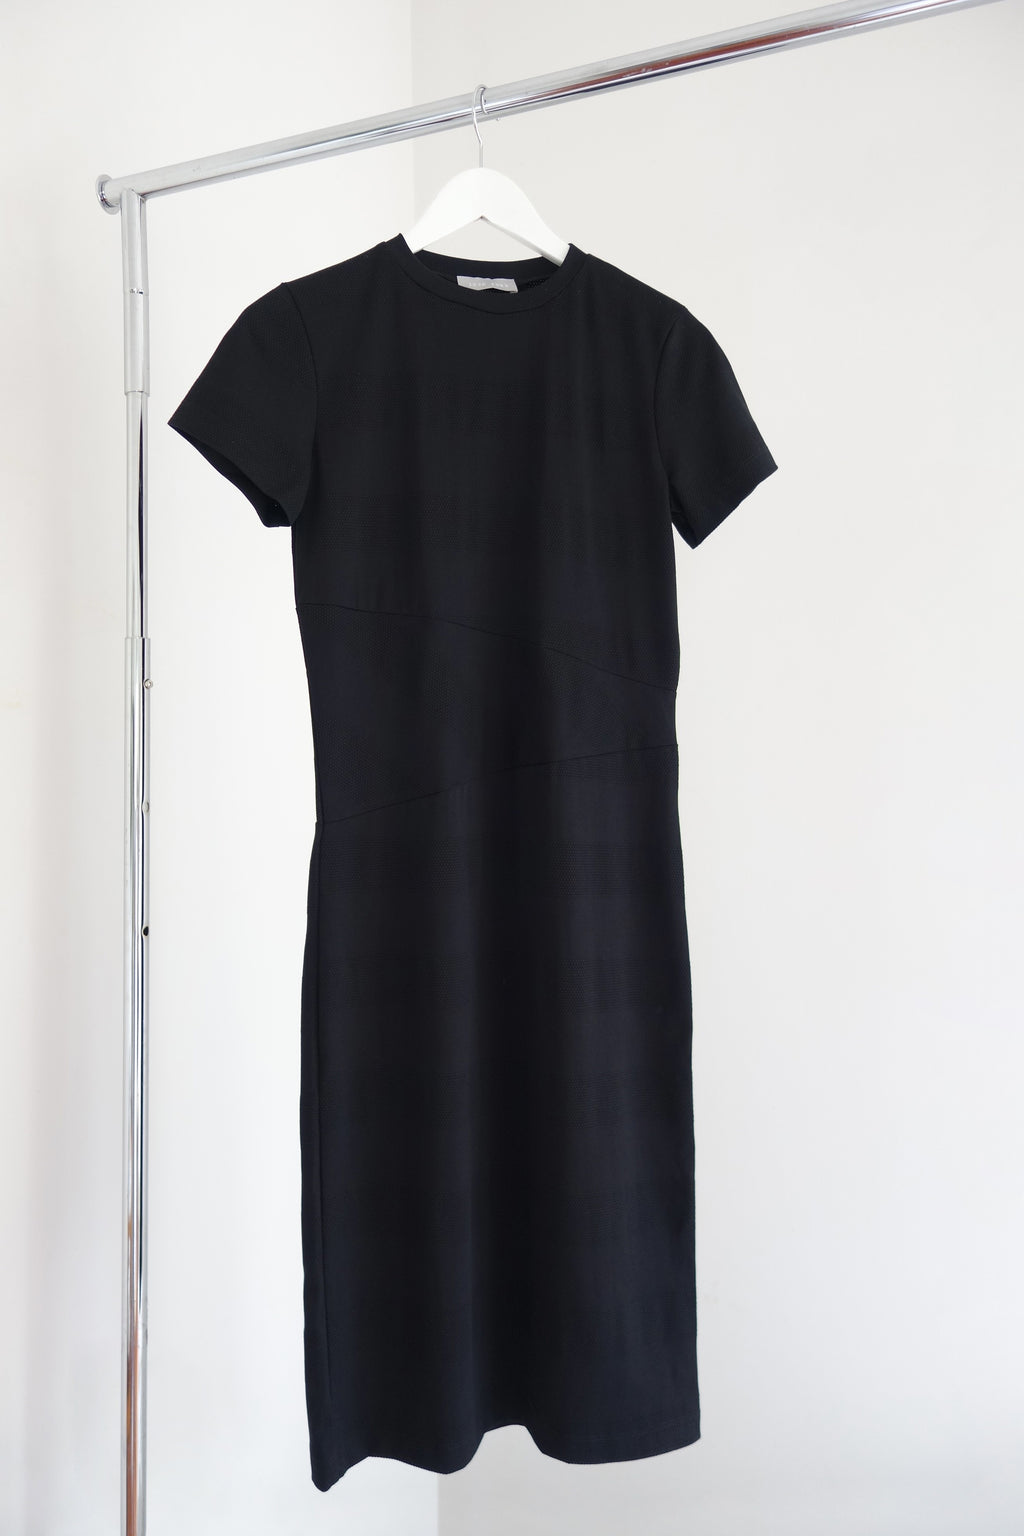 Cosmos Dress | Black Mesh Stripe